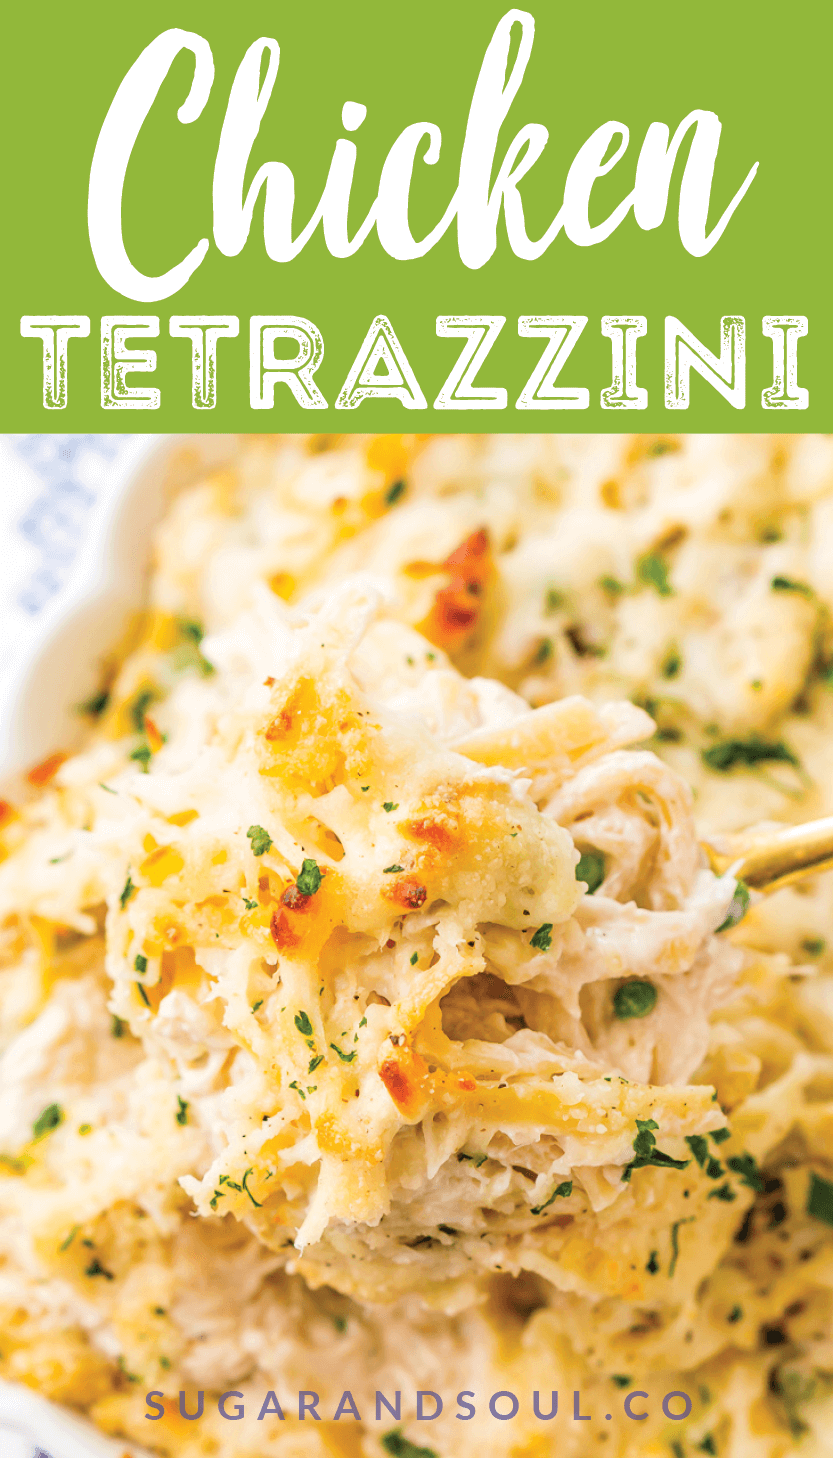 This Chicken Tetrazzini recipe is an easy, cozy, and delicious casserole dish! Fettuccine, chicken, mushrooms, and peas are baked into a creamy cheese sauce with tons of flavor! It's an instant family favorite!